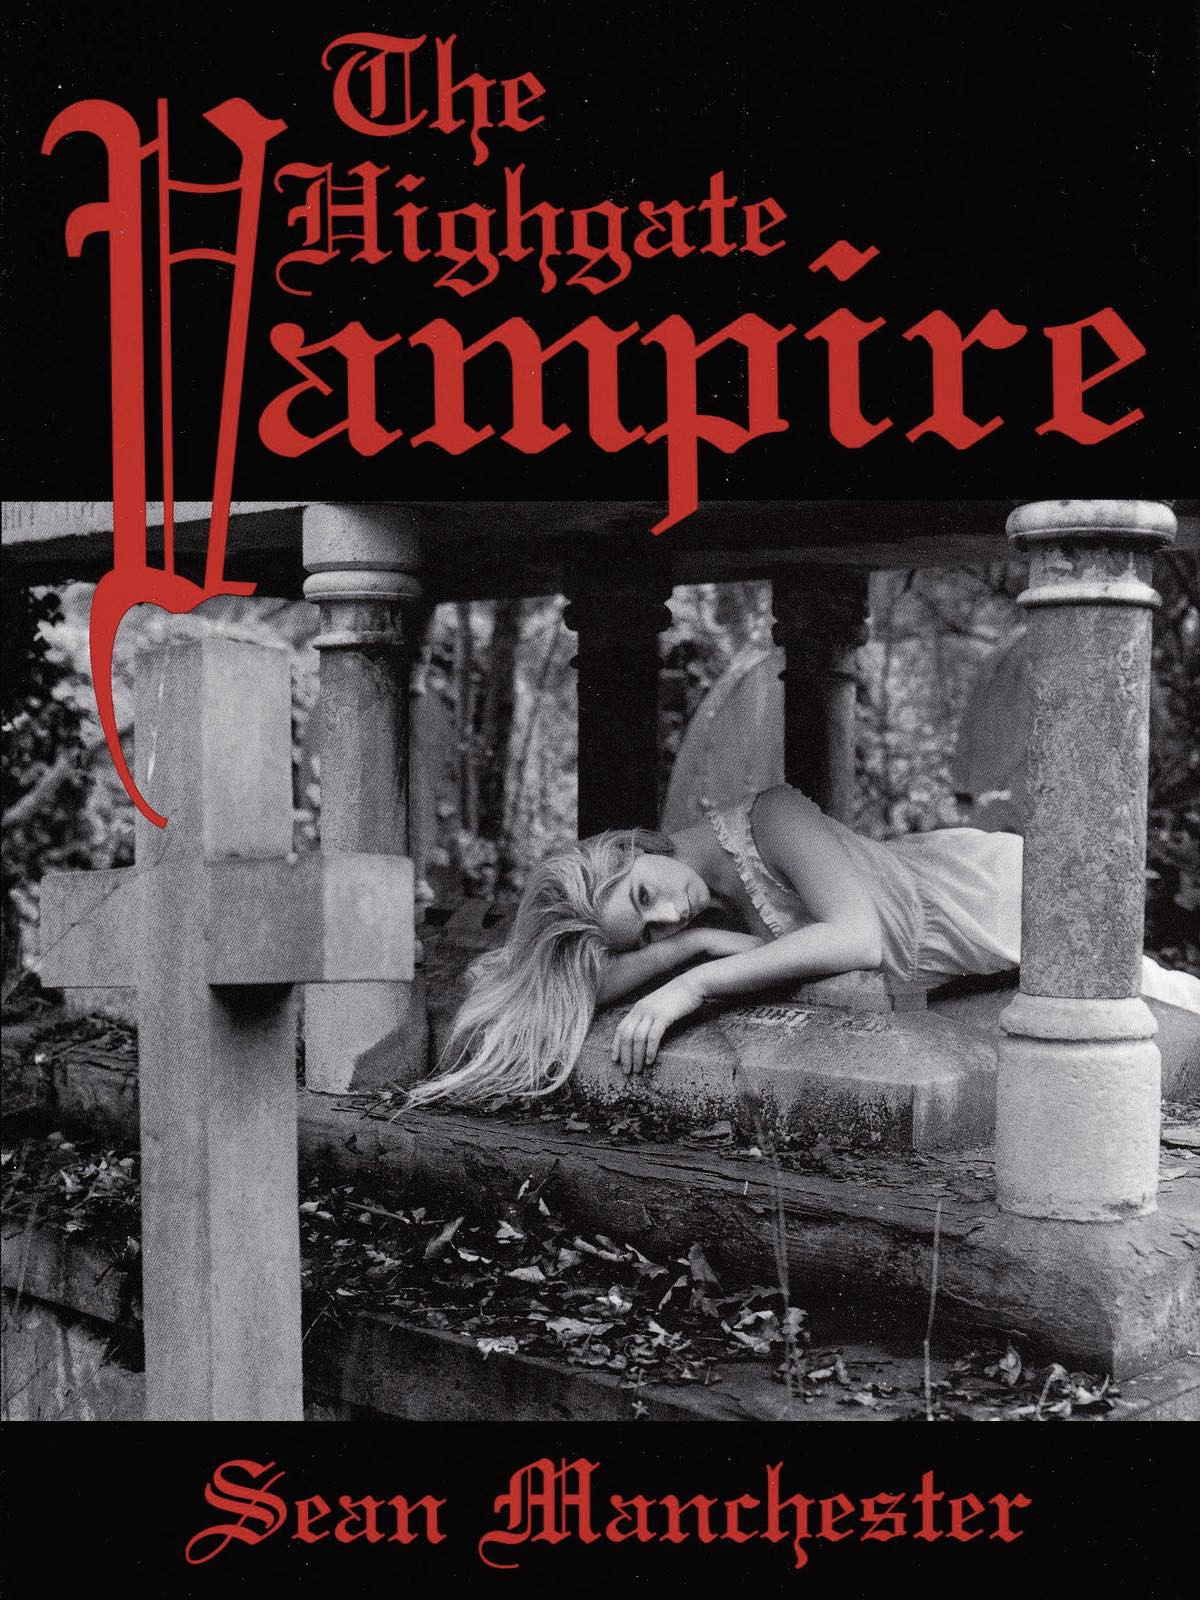 shadow of the vampire essay The theatrical play lugosi - the shadow of the vampire (hungarian: lugosi - a vámpír árnyéka) is based on lugosi's life, telling the story of his life as he became typecast as dracula and as his drug addiction worsened.